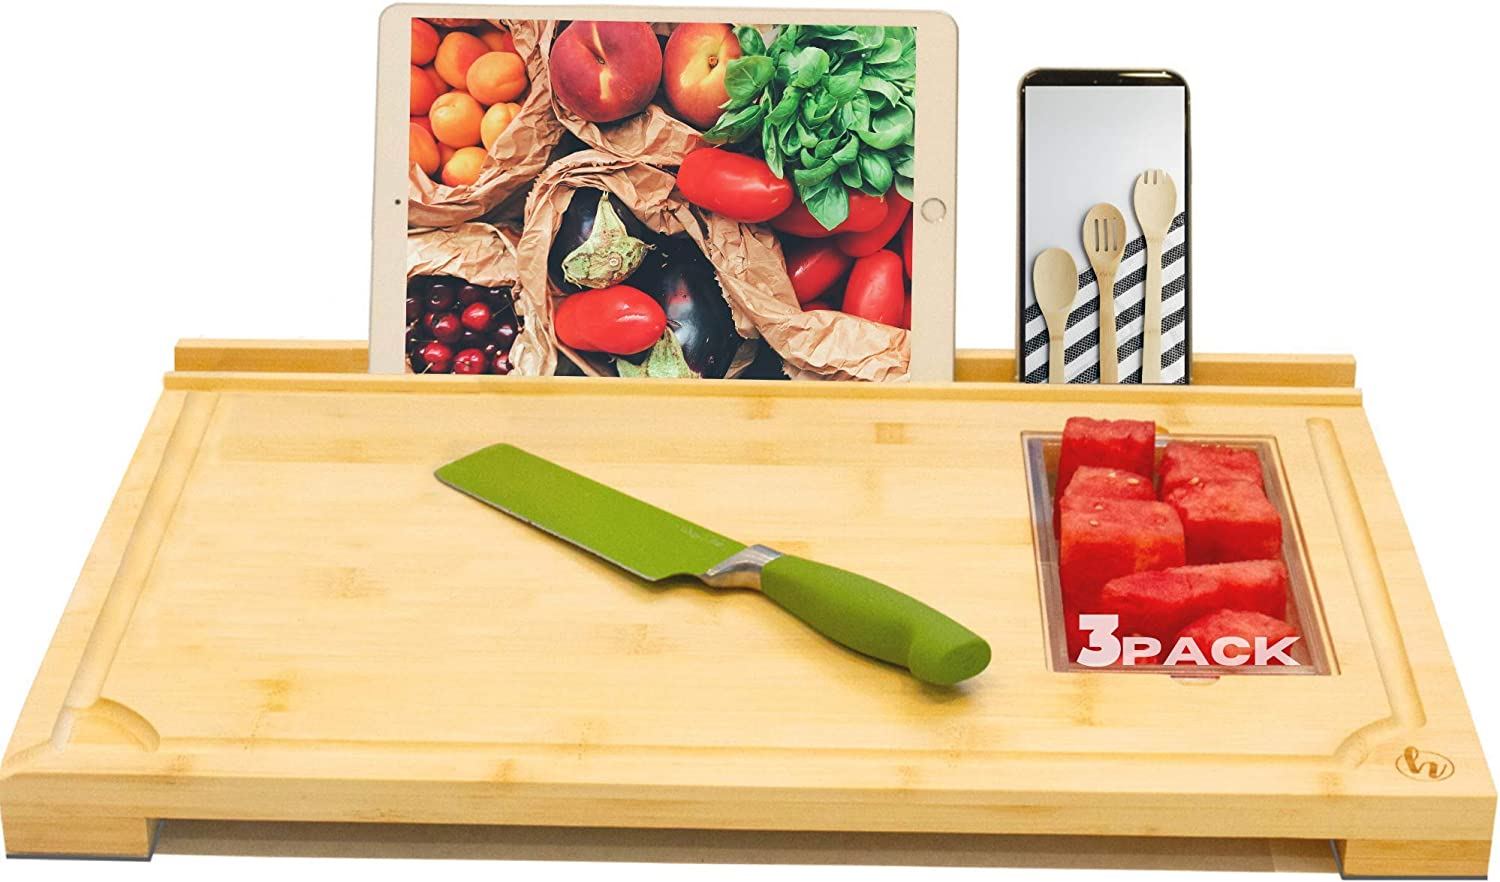 Modern Bamboo Cutting Board - Phone, Ipad, Tablet Holder - Set of 3 Food Prep Containers/Trays - Non-Slip Feet, Juice Groove, Chopping Board, Butchers Block - Extra Large Surface - 20